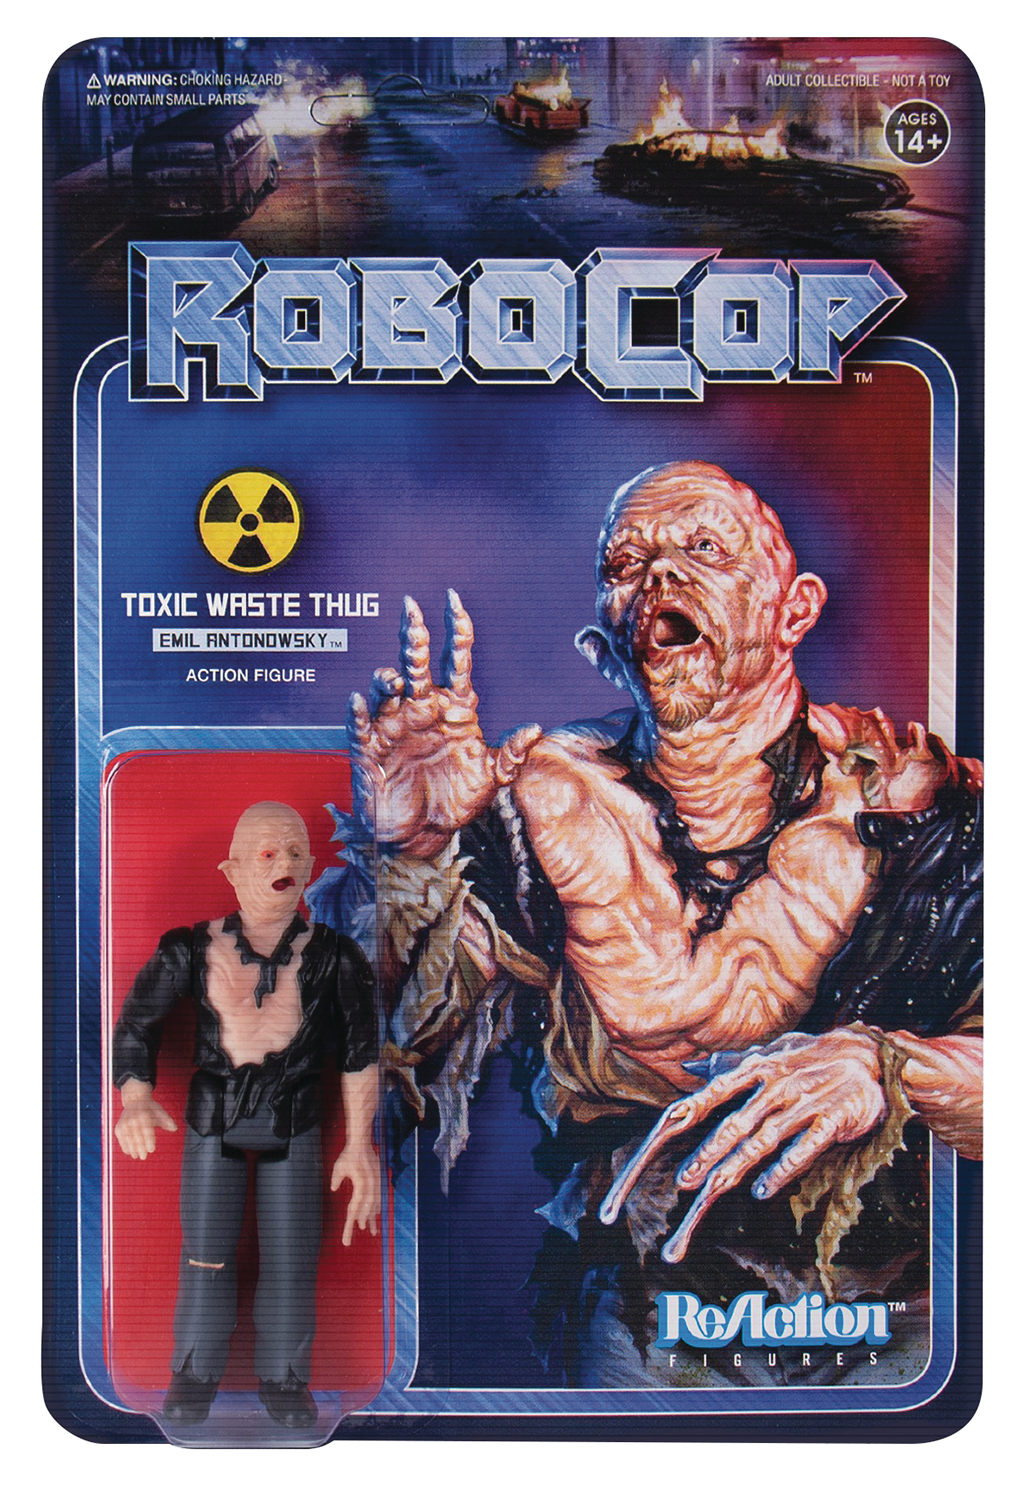 ROBOCOP TOXIC WASTE EMIL ANTONOWSKY REACTION FIGURE  (C